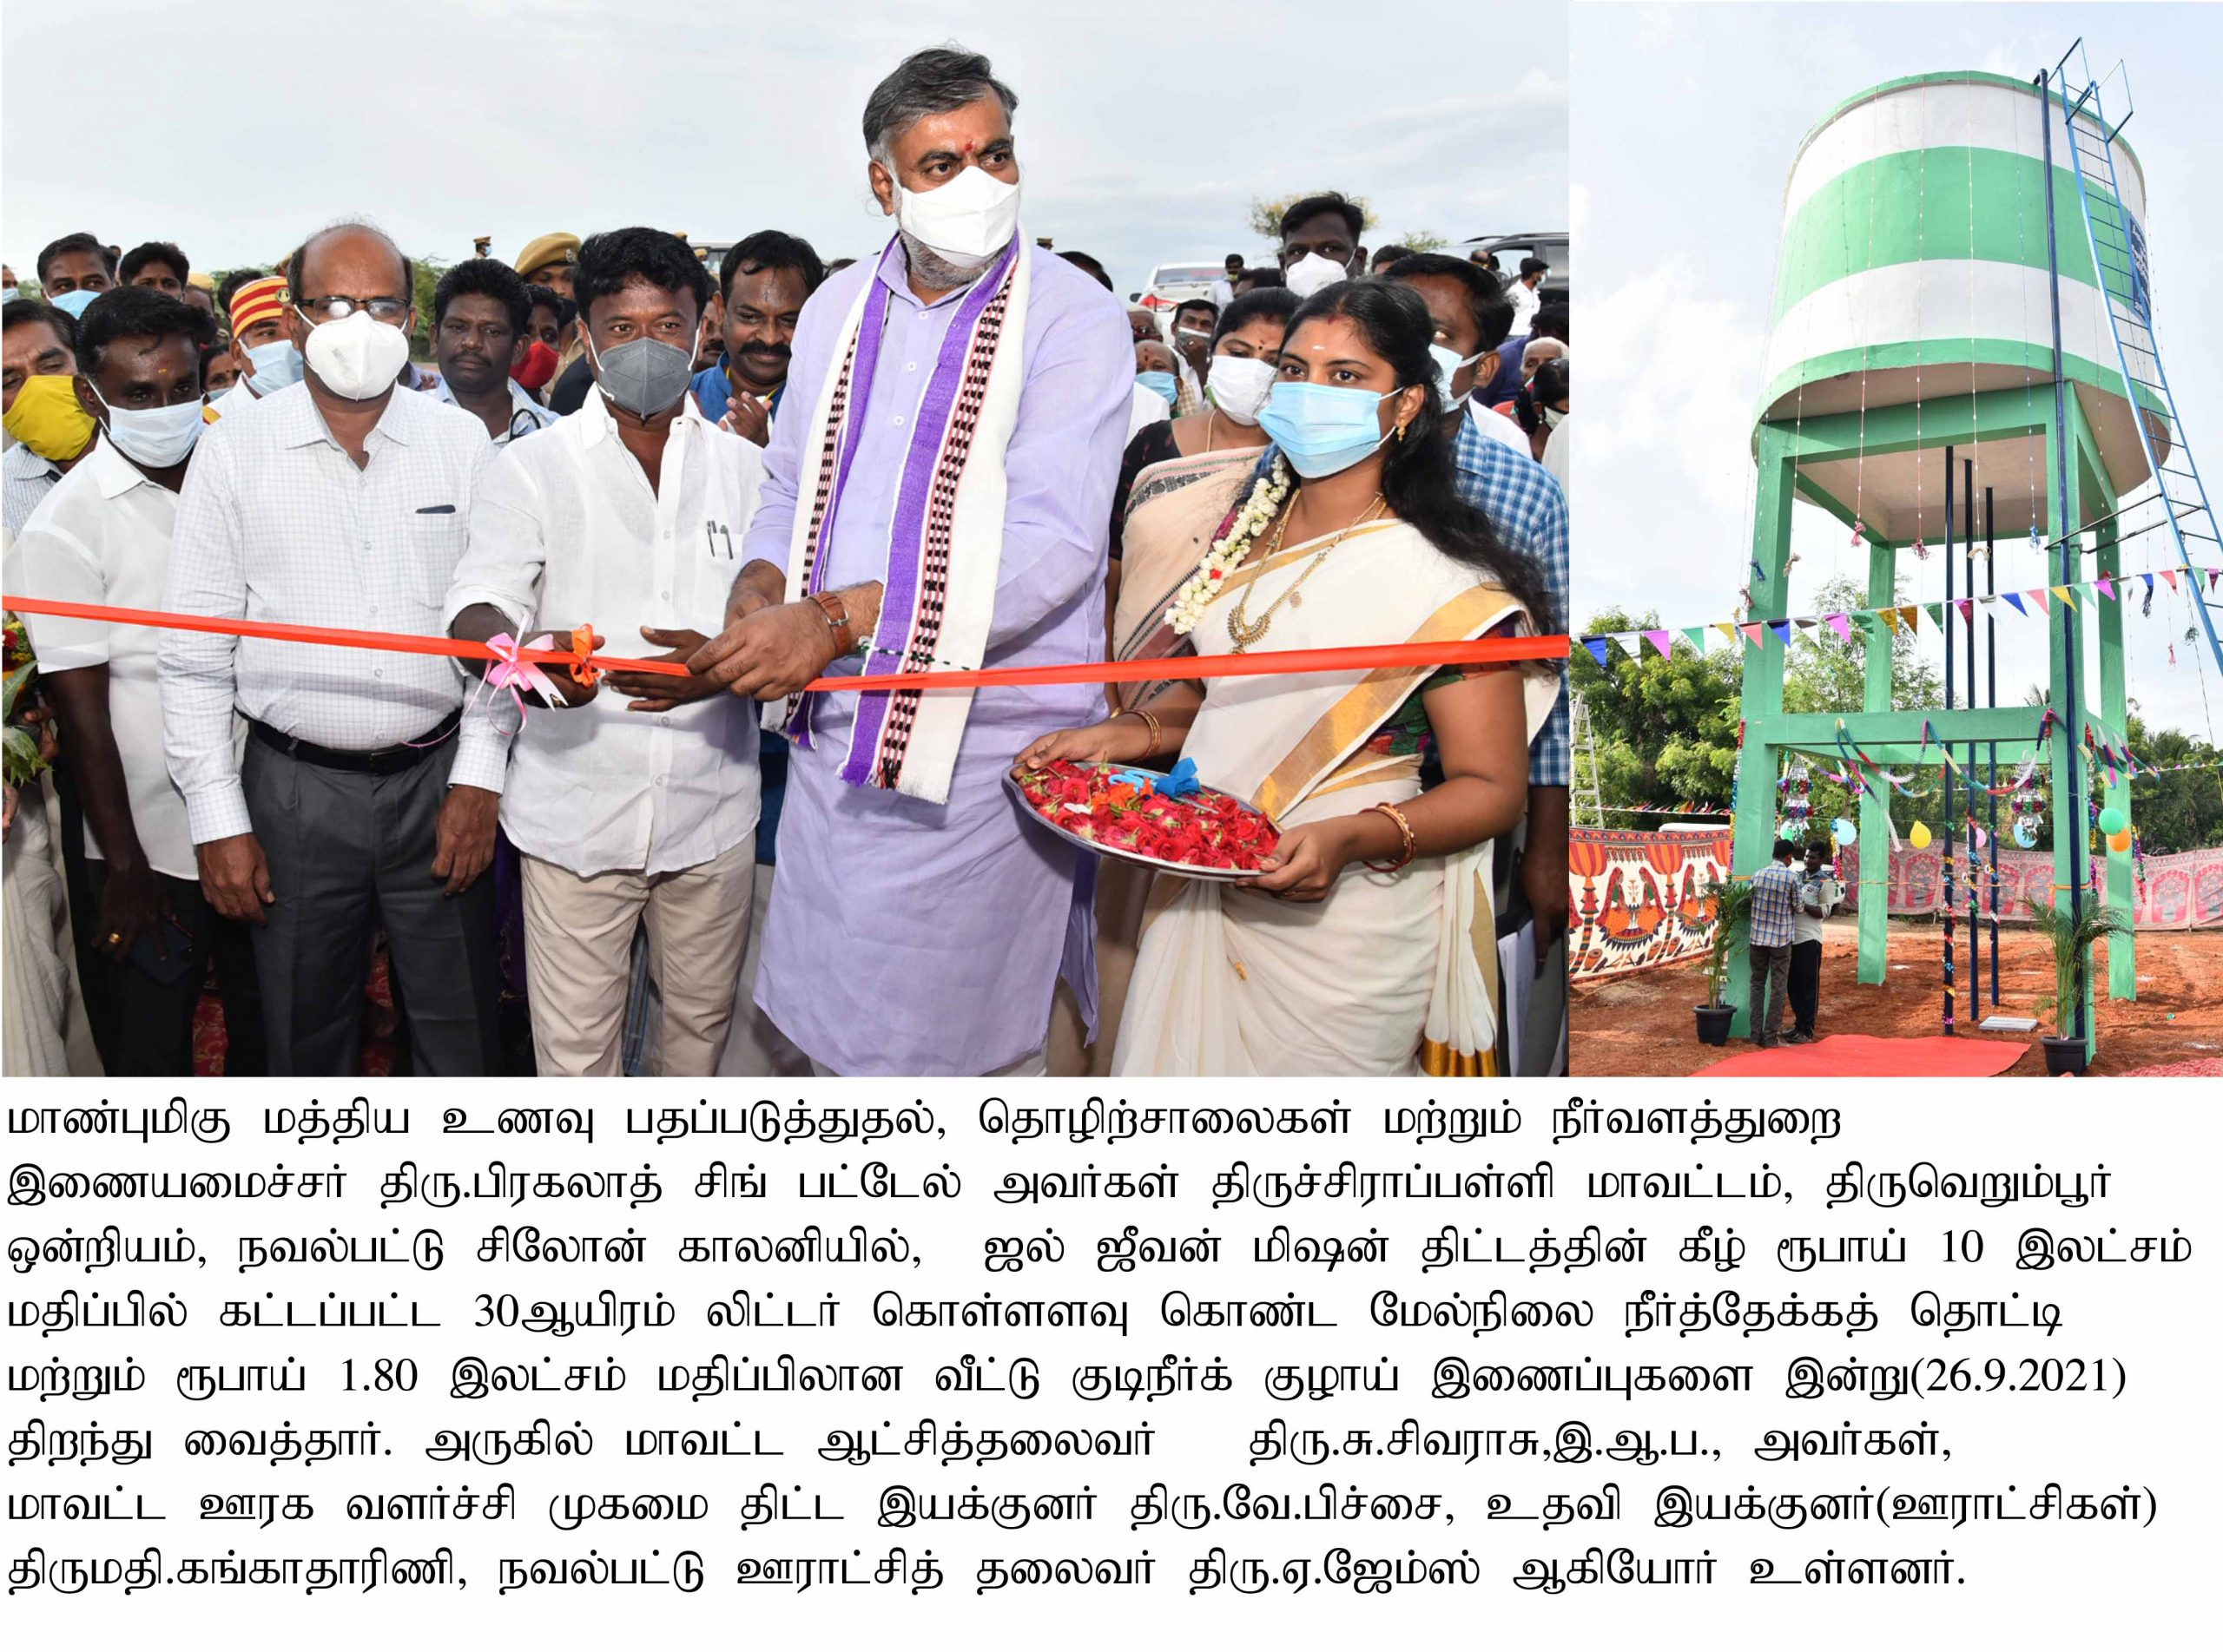 Hon'ble Minister of Central Food Processing inaugurateds Overhead reservoir on 26.09.2021